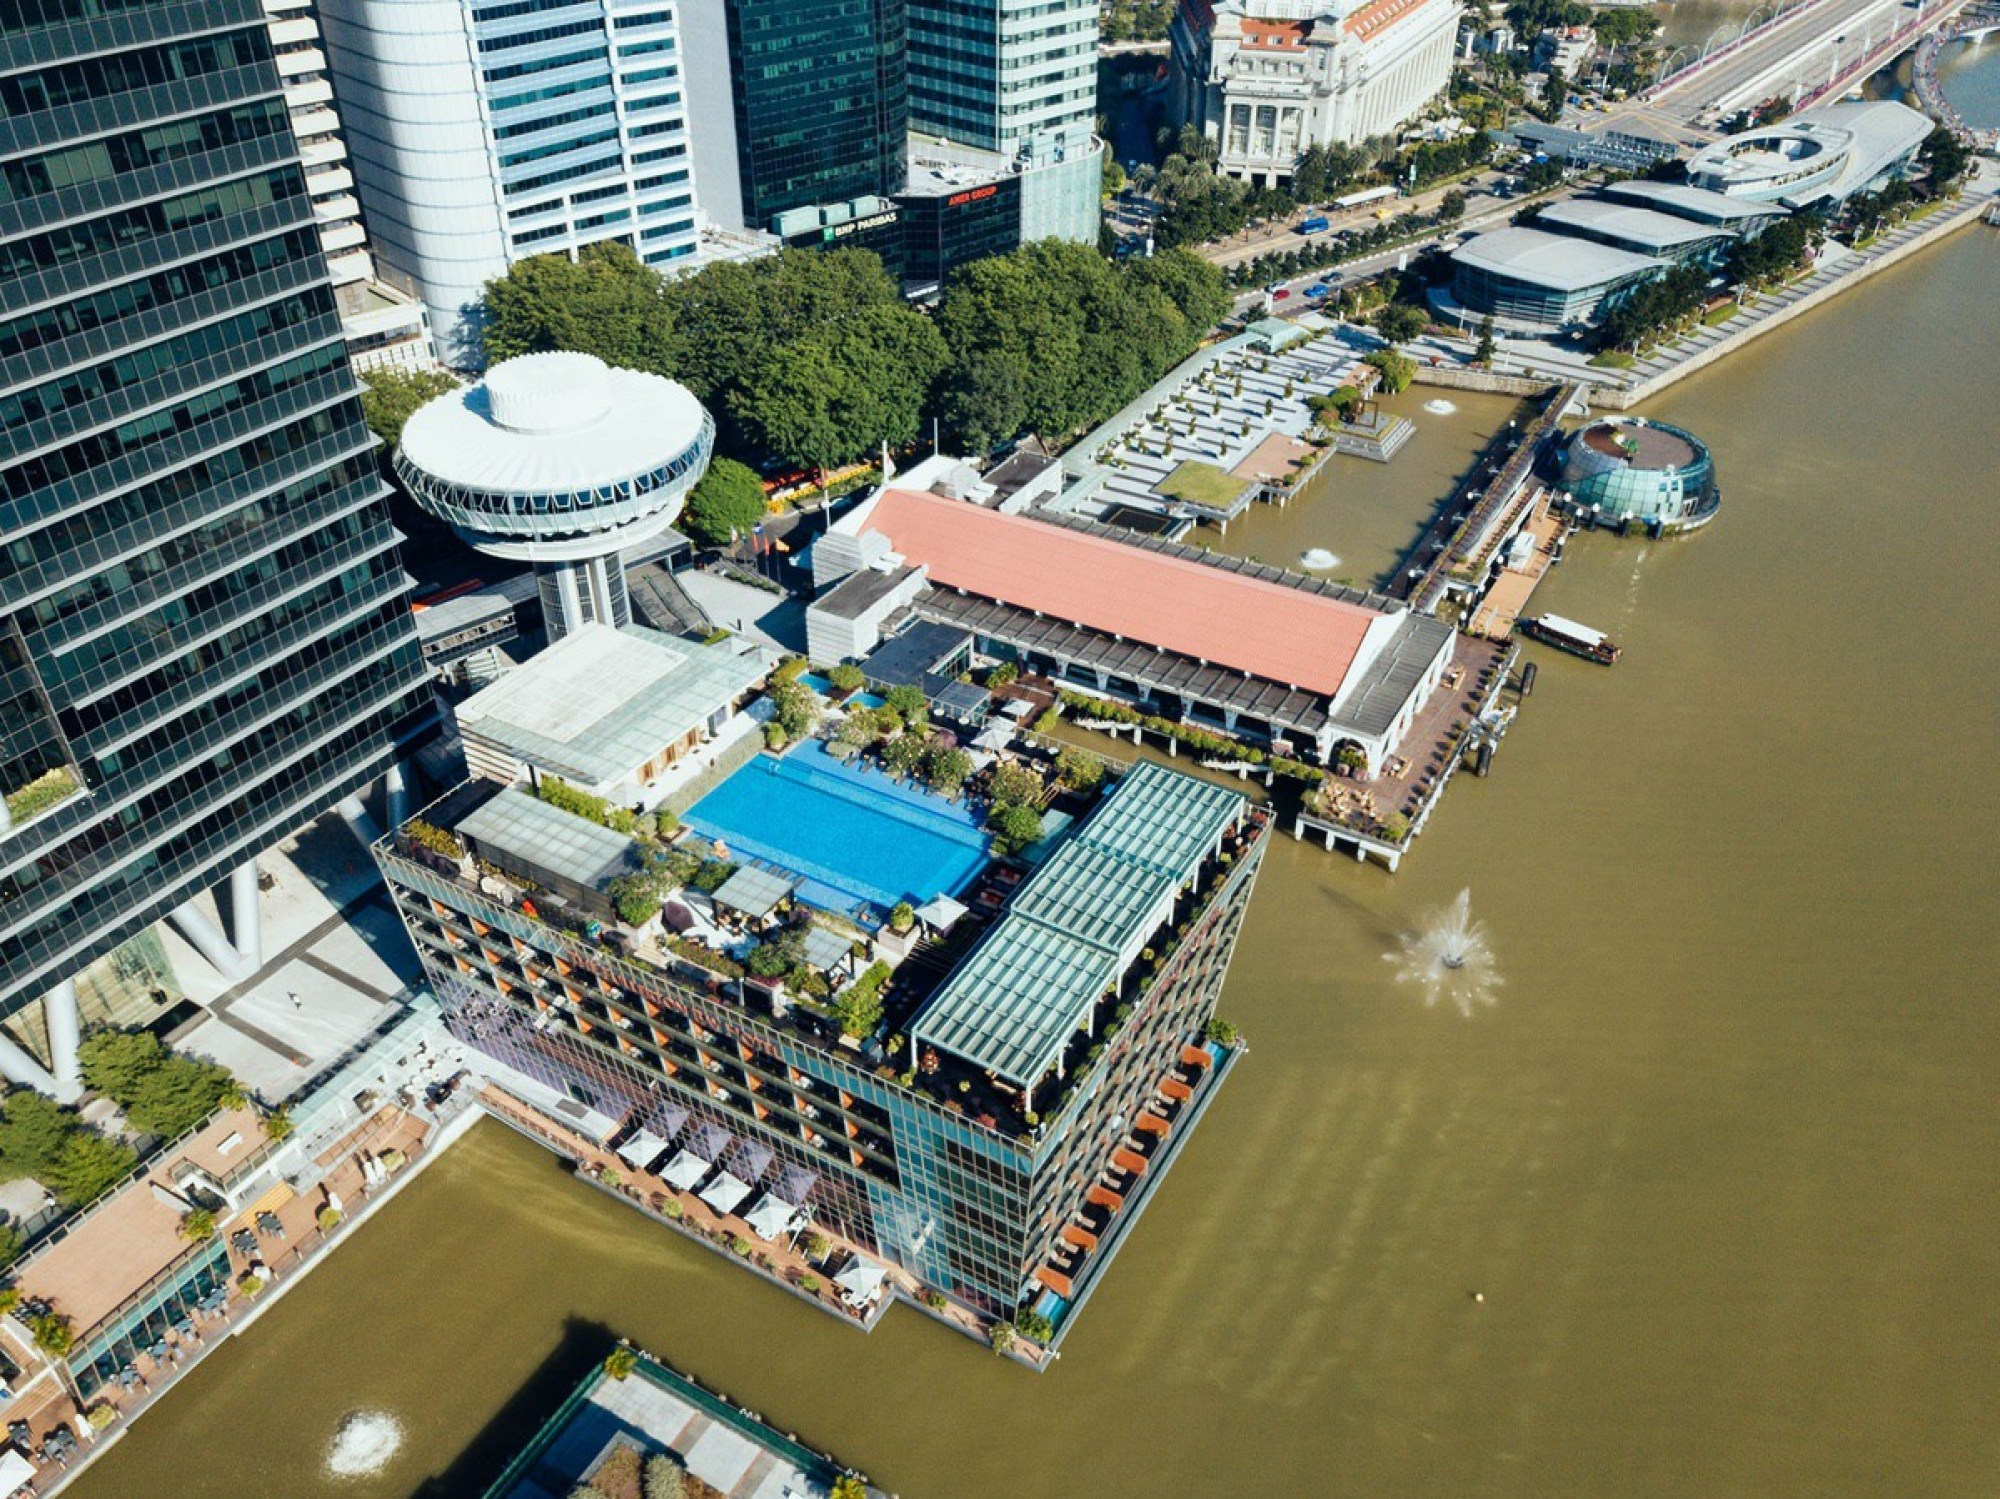 Waterfront building complex in Singapore